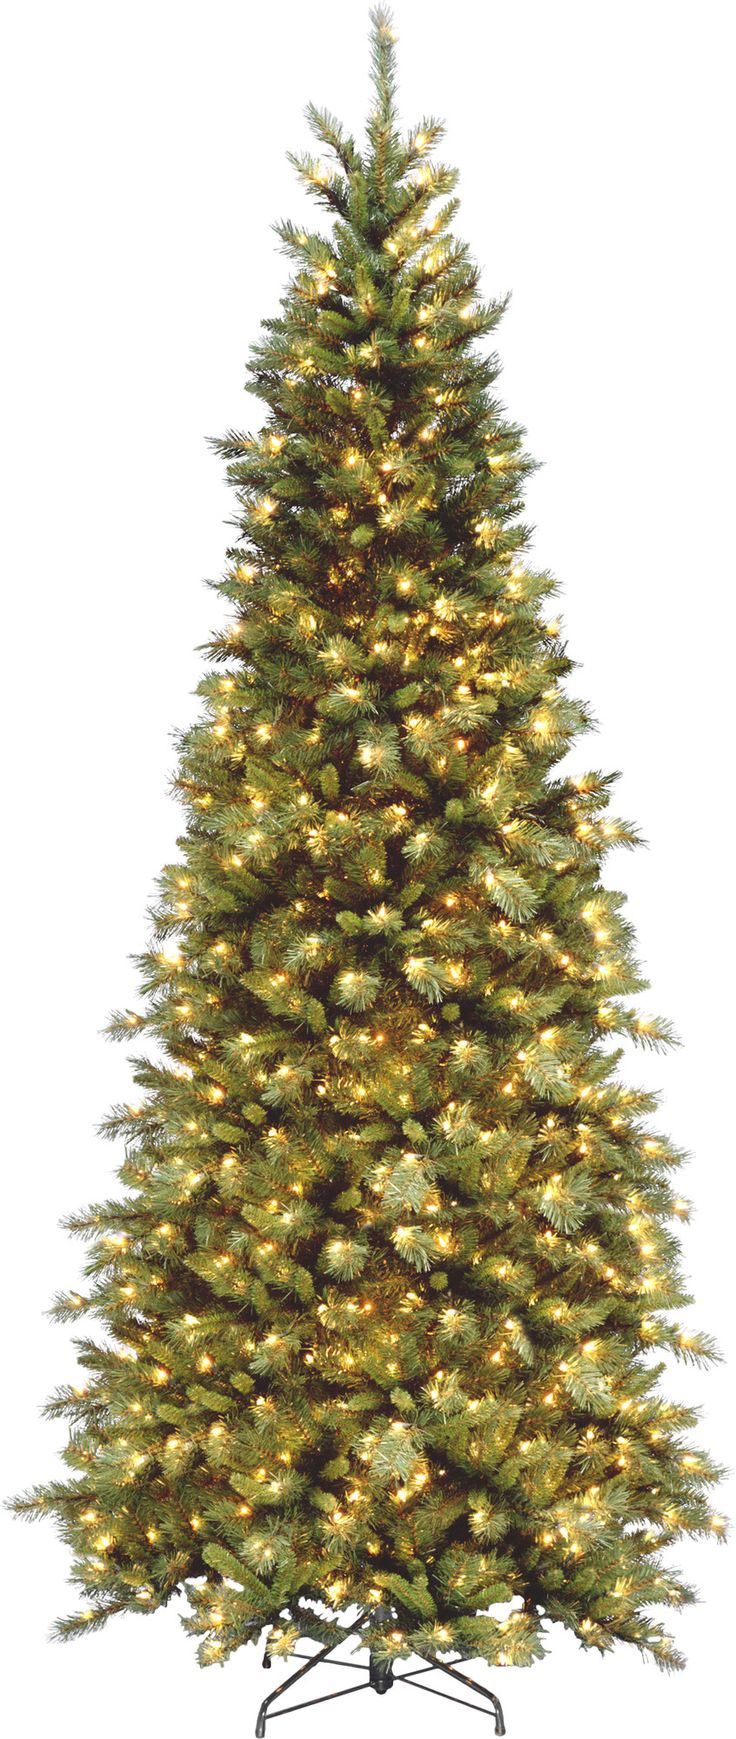 tiffany fir 9 green slim artificial christmas tree with 700 pre lit clear lights - 9 Slim Christmas Tree